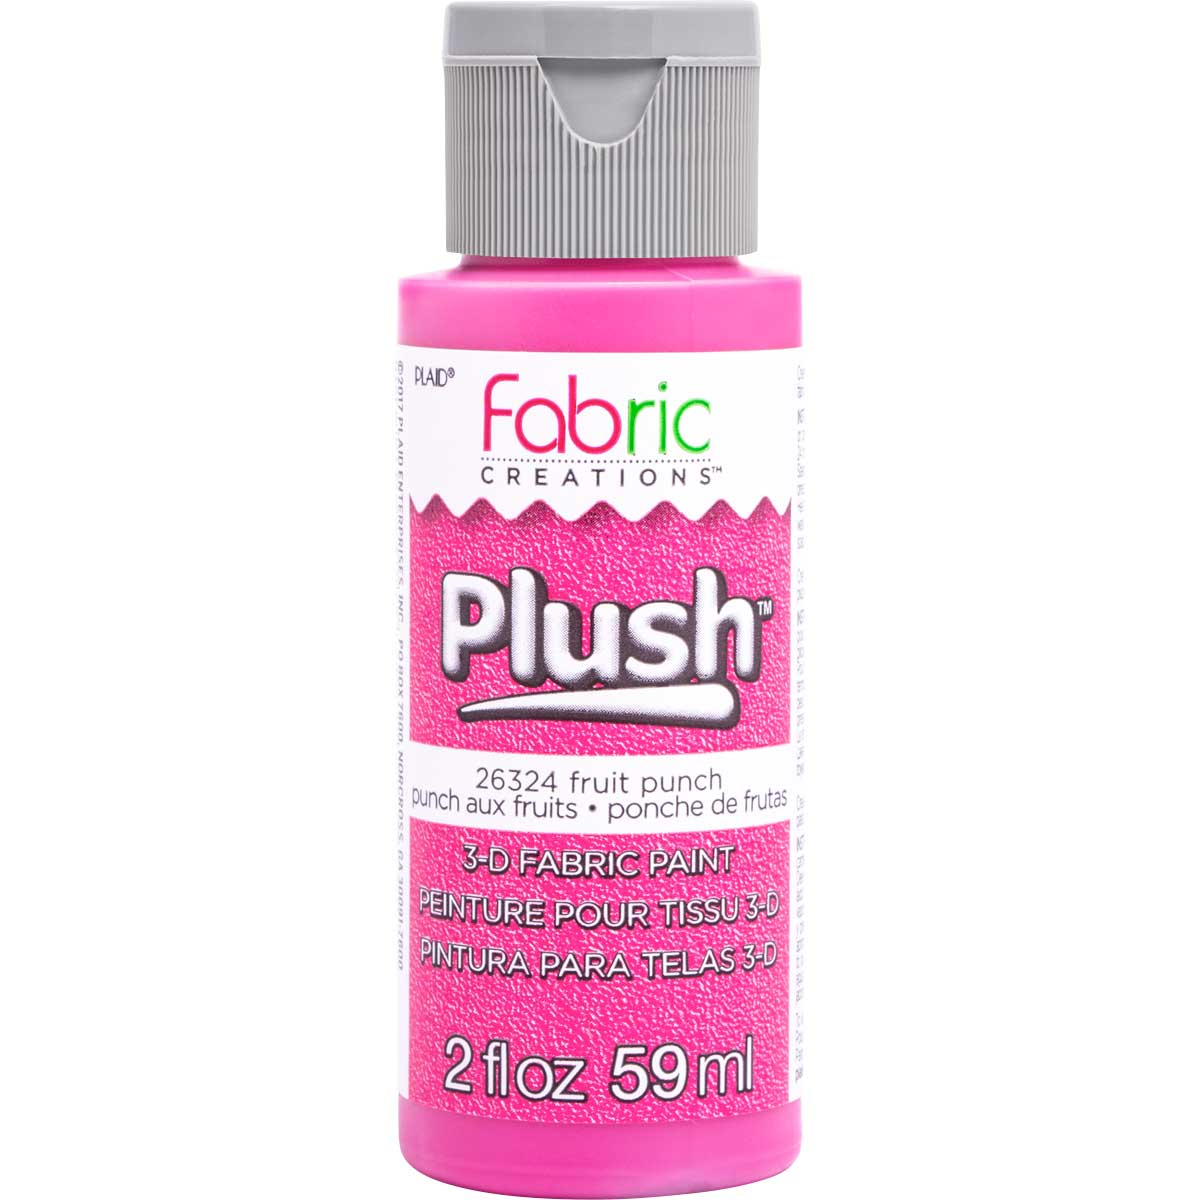 Fabric Creations™ Plush™ 3-D Fabric Paints - Fruit Punch, 2 oz. - 26324